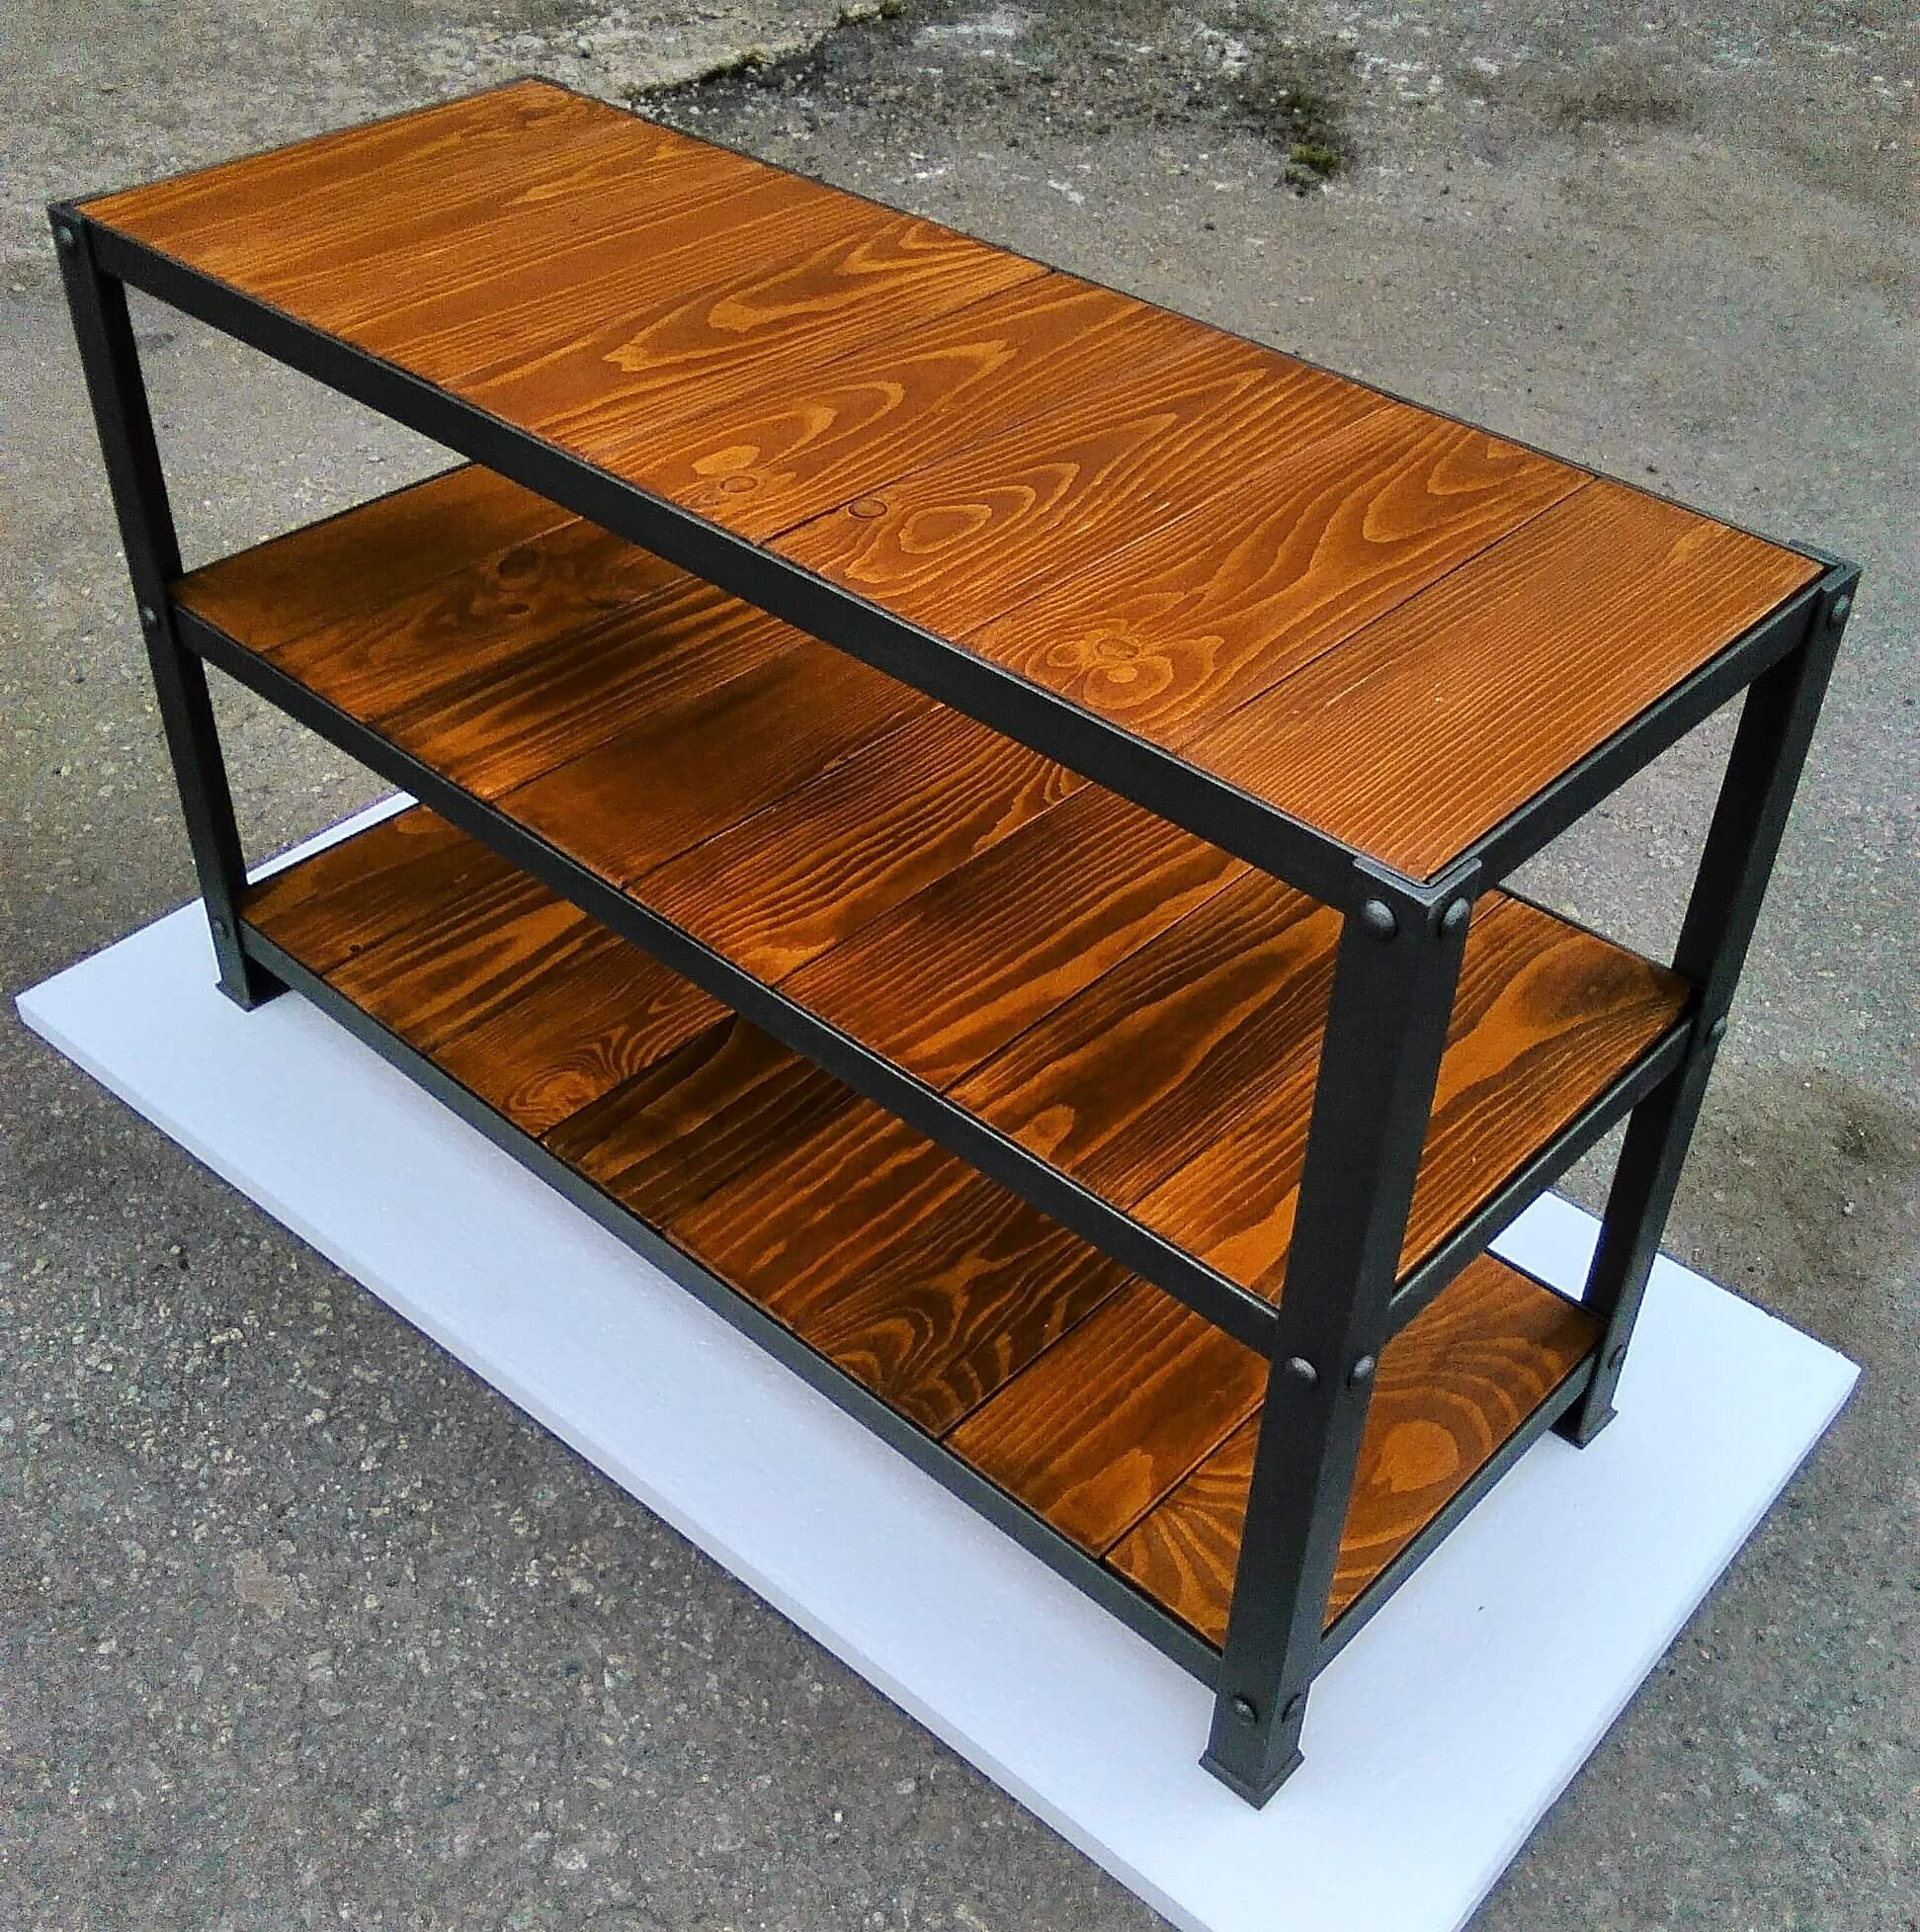 Botník z paletových dosiek Industriálny regál Botník z paletových prken Industriální regál Reclaimed Wood Shoe Rack Shoe Bench Altholz Schuhschrank Range-chaussures en bois de récupération